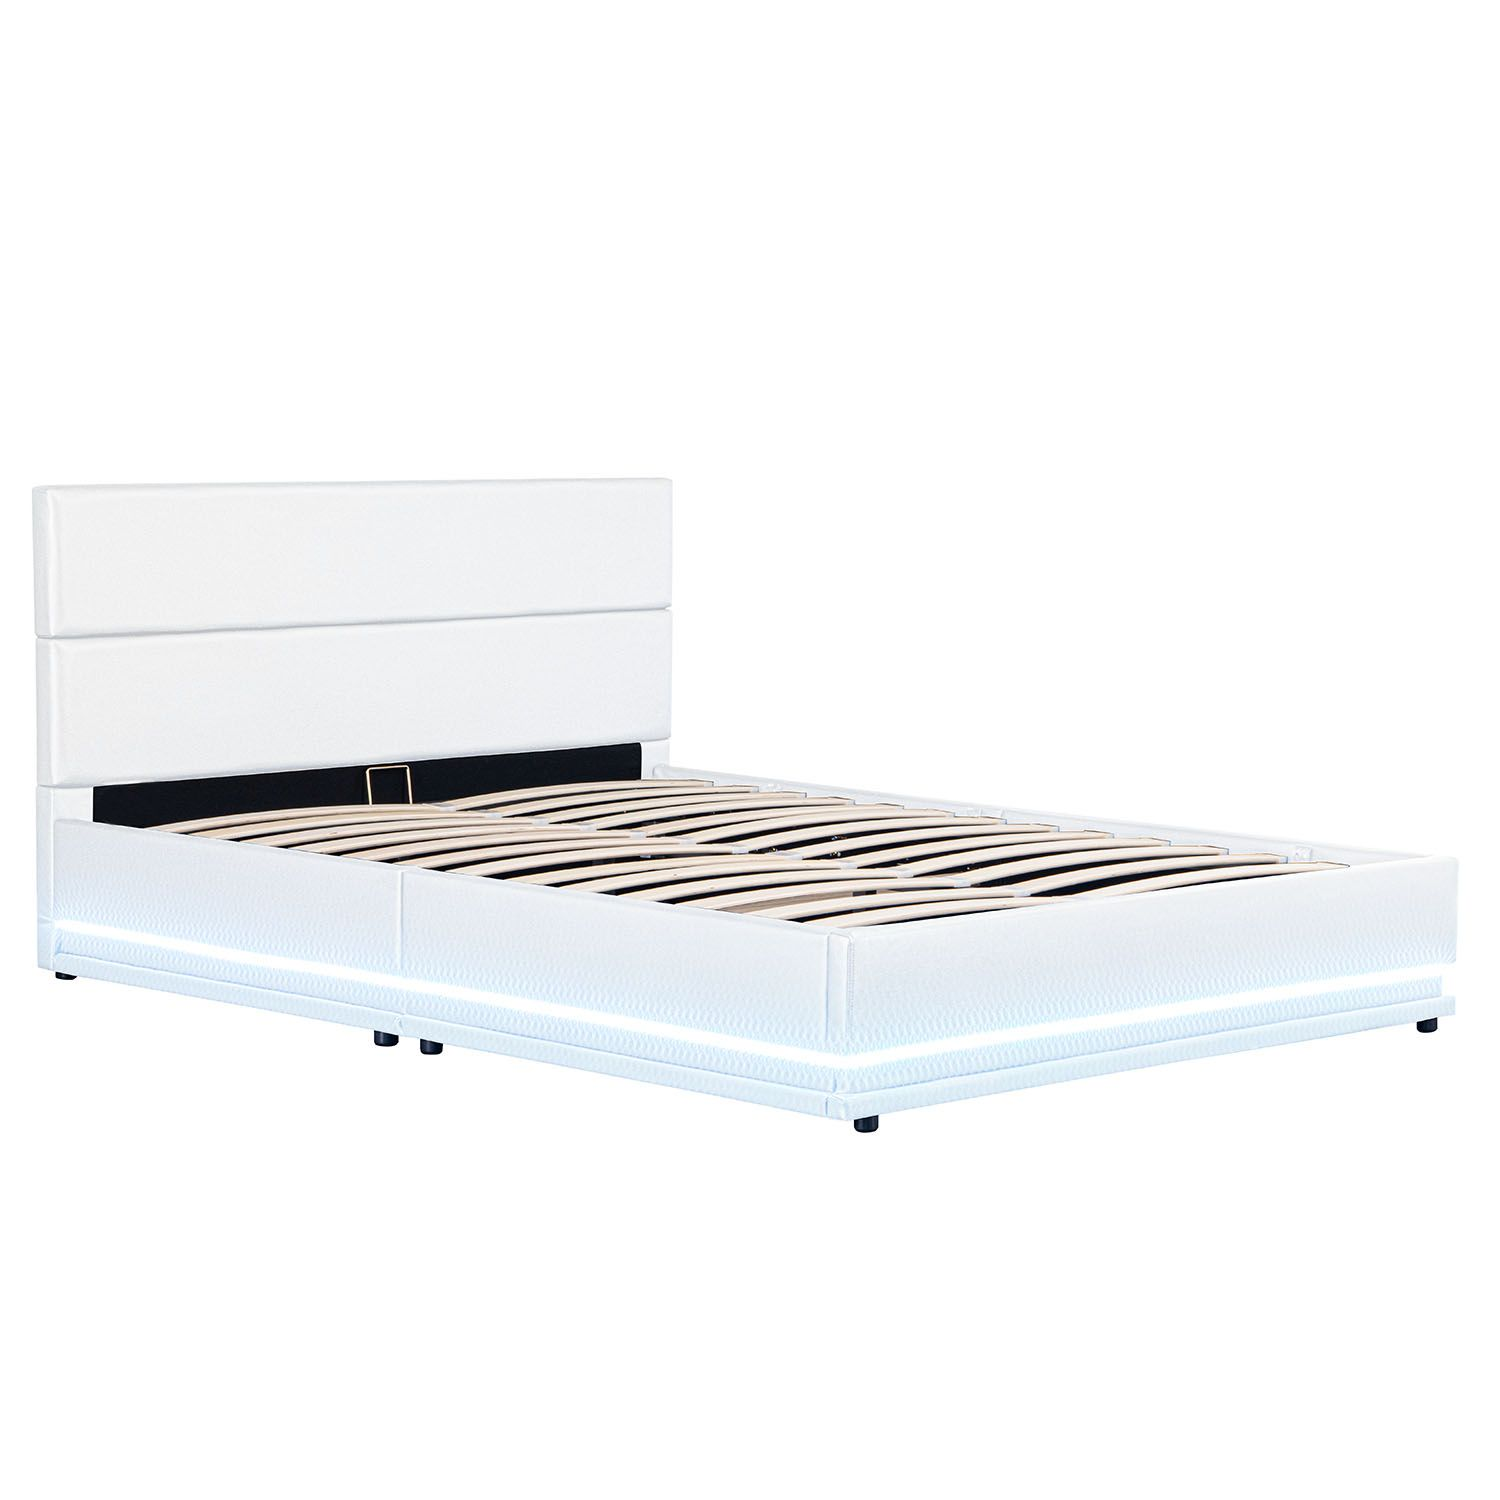 polsterbett led doppelbett bett bettgestell lattenrost kunstlederbett bettkasten ebay. Black Bedroom Furniture Sets. Home Design Ideas